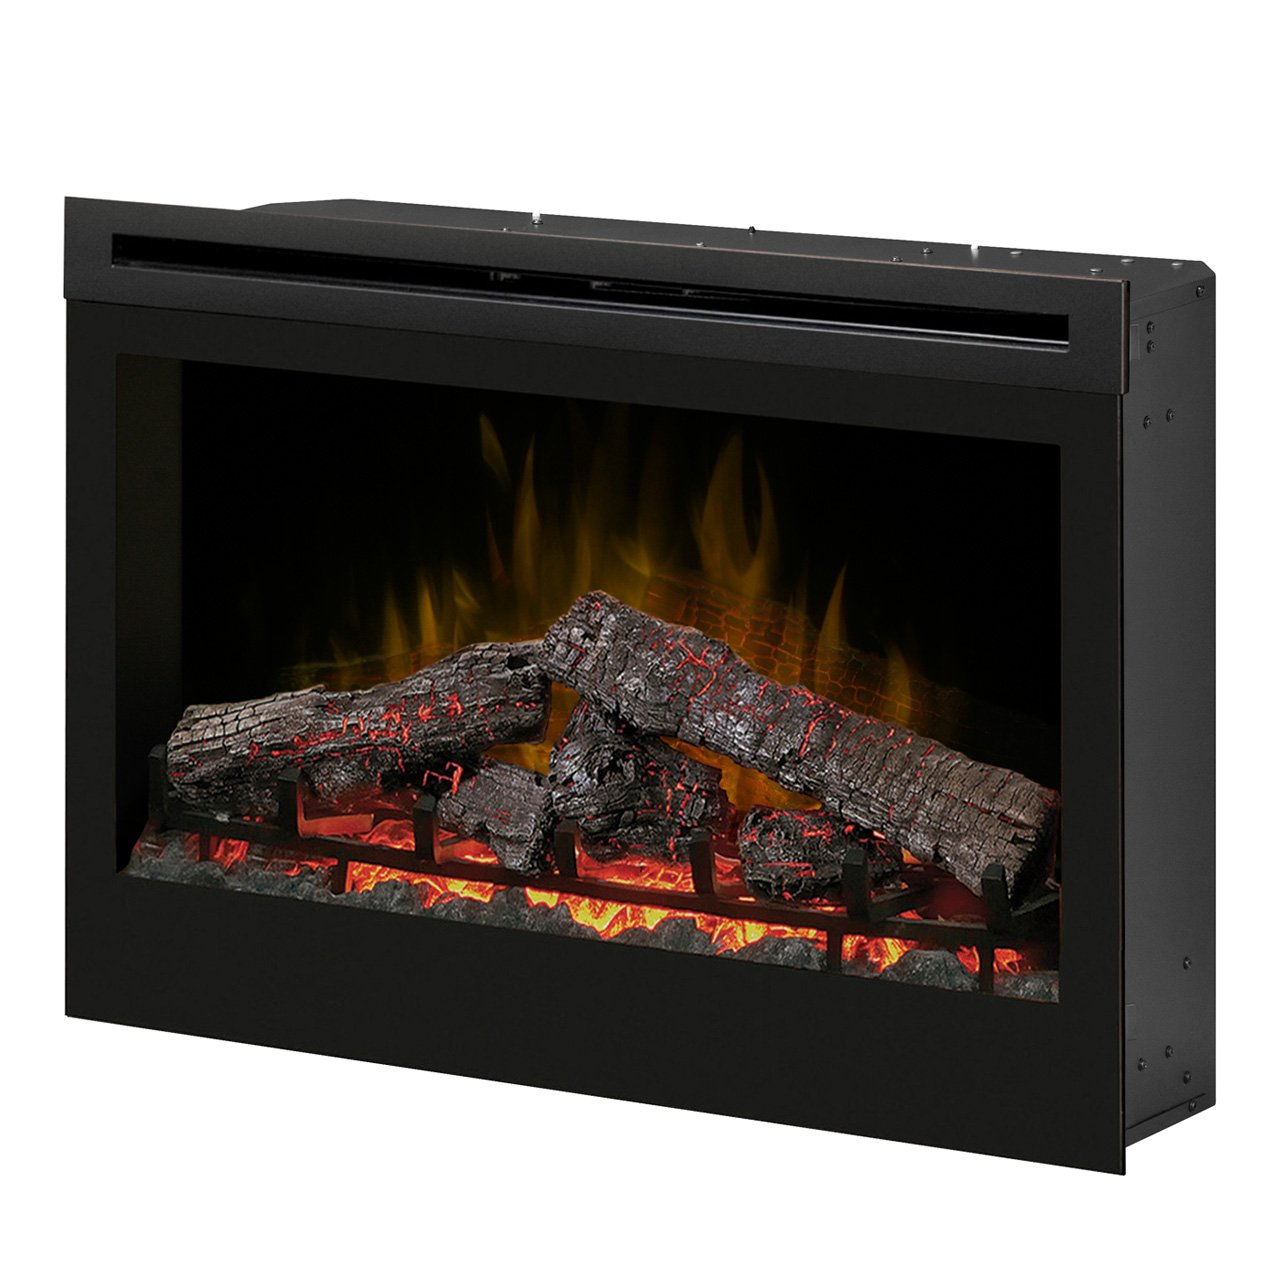 Dimplex Electric Fireplace Parts Elegant Dimplex Df3033st 33 Inch Self Trimming Electric Fireplace Insert